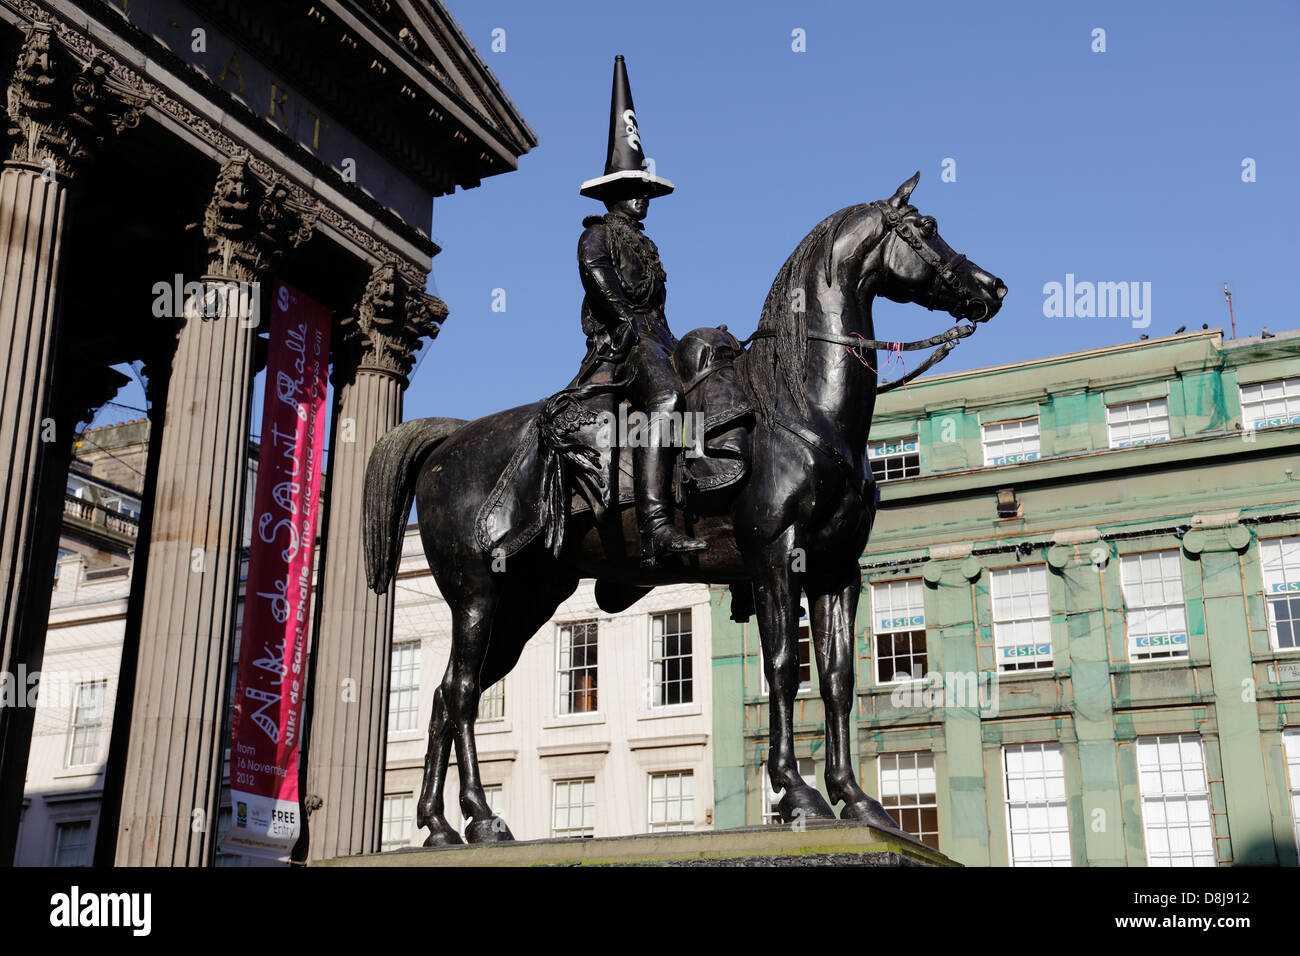 The Duke of Wellington statue with a black cone on it's head, Glasgow city centre, Scotland, UK - Stock Image